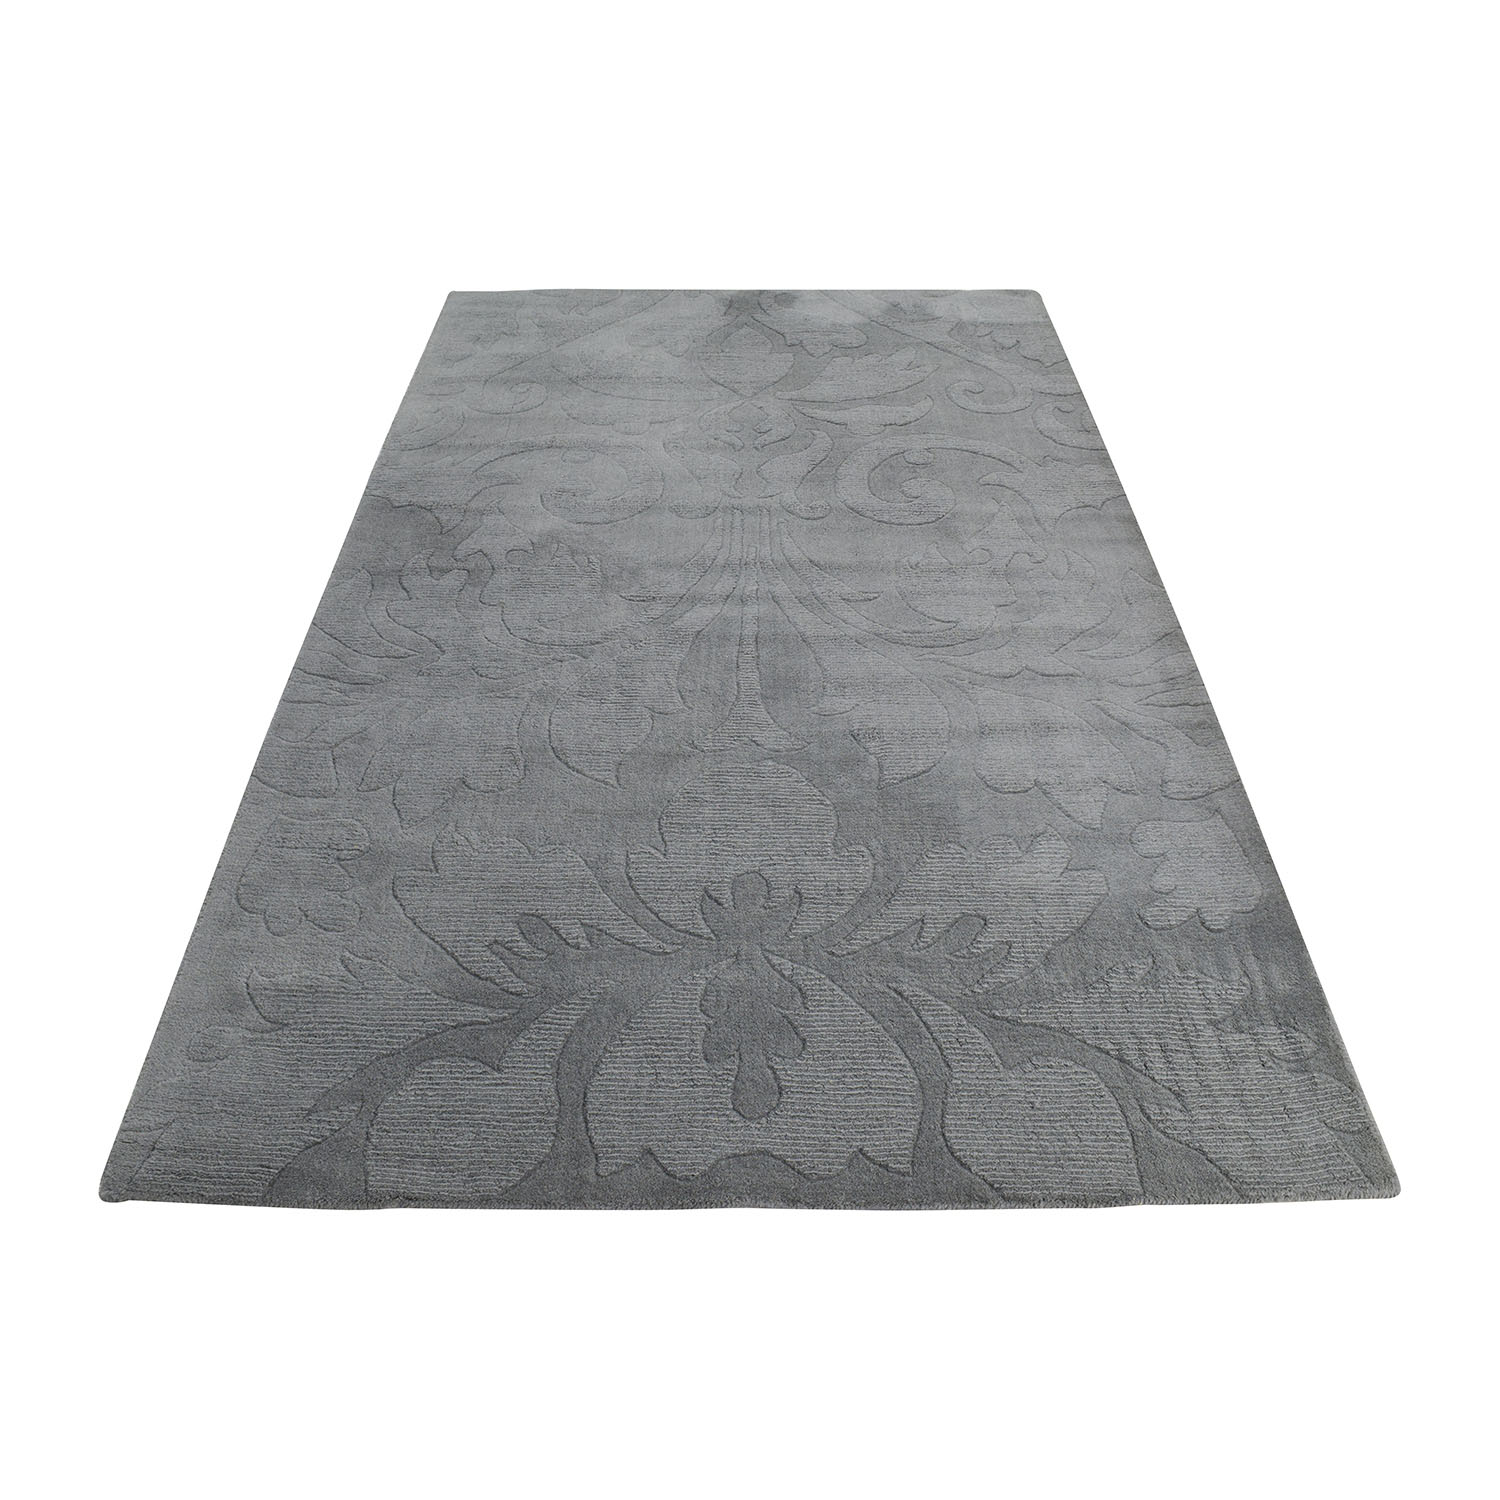 Nuloom Scroll Slate Grey Blue Rug / Decor